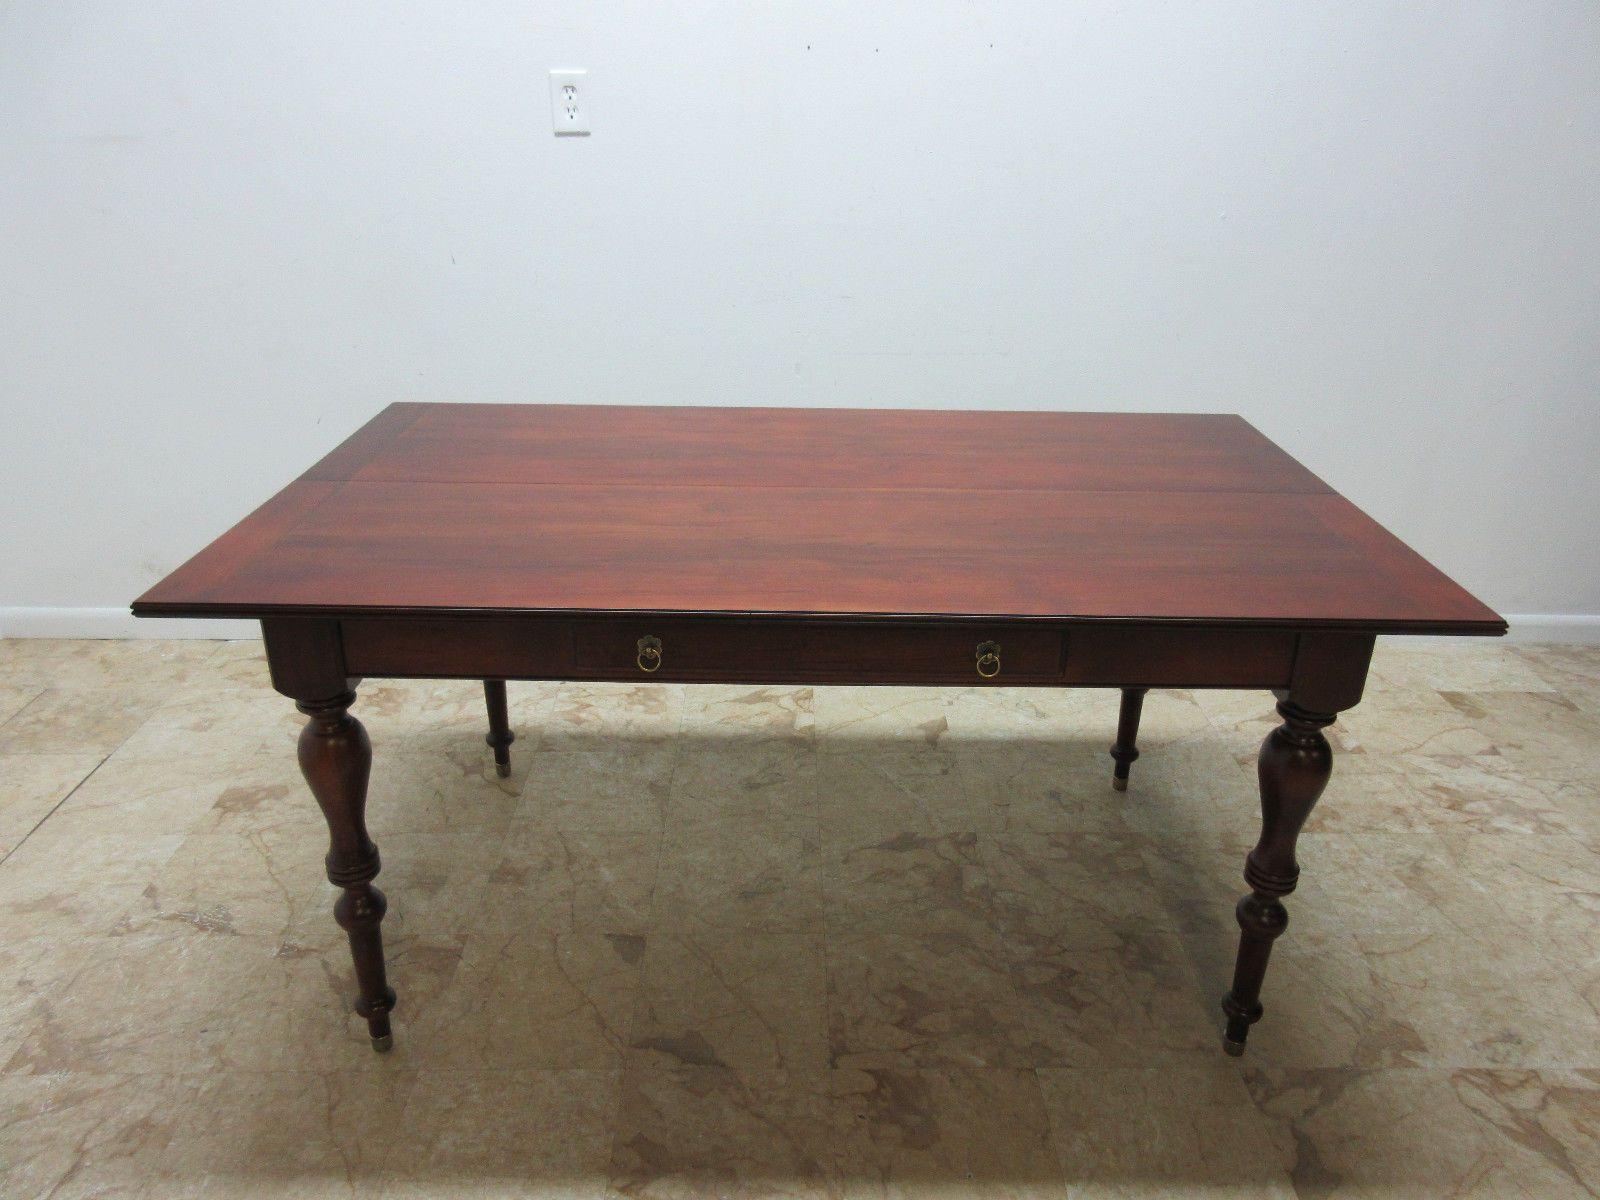 Table We Have That Folds Into A Side Table Ethan Allen British